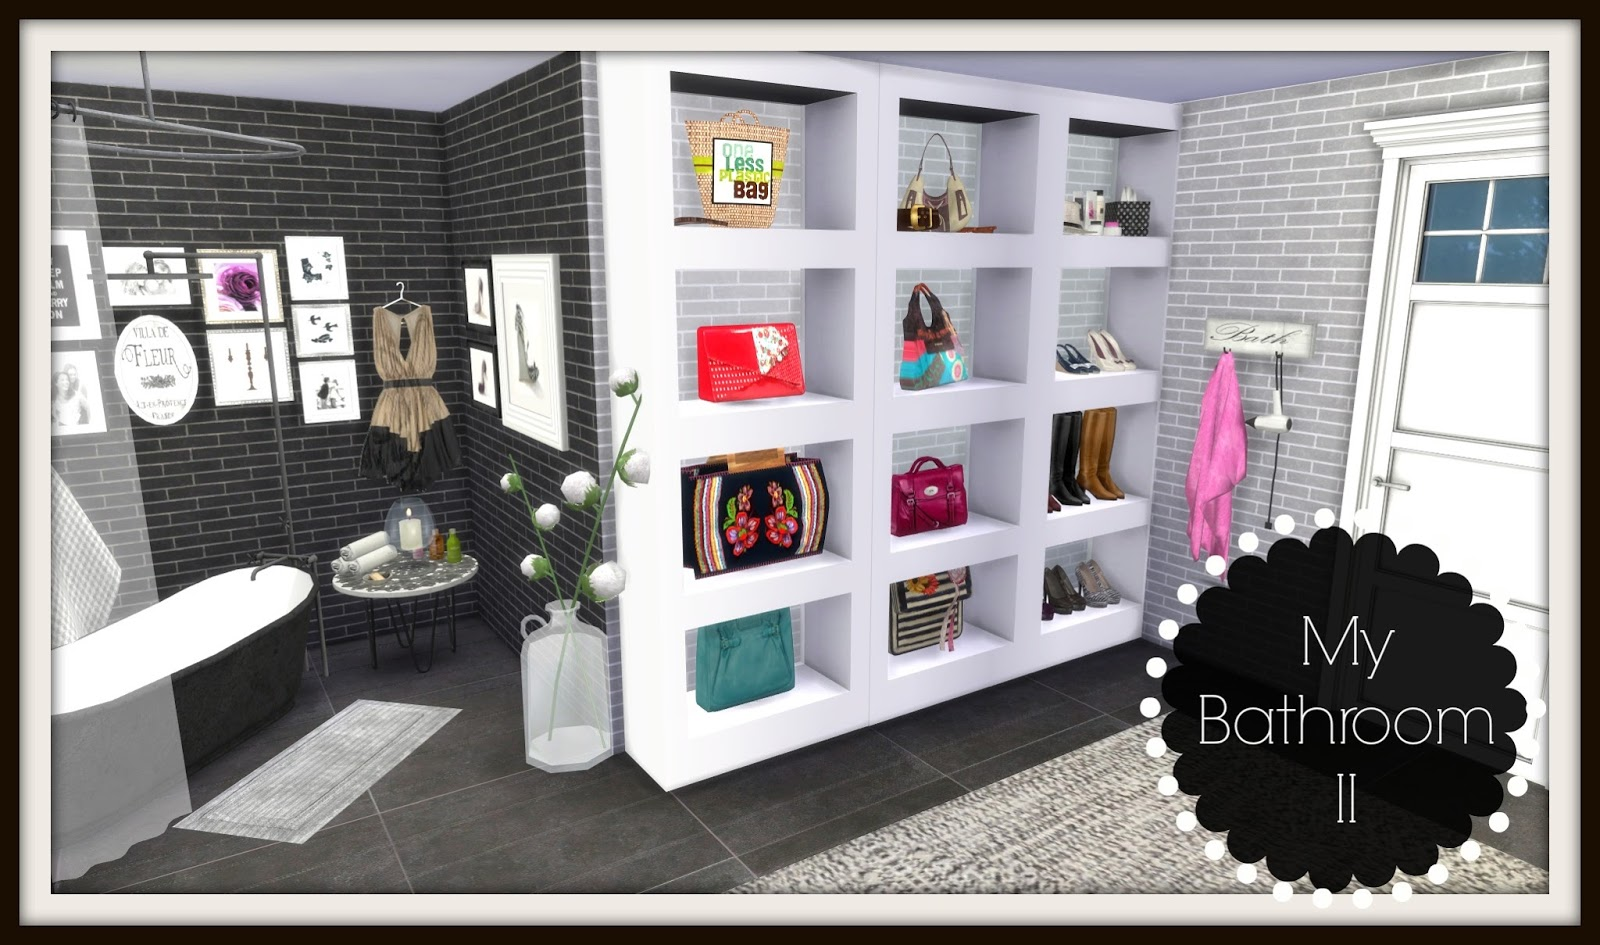 House Design Games Like Sims Sims 4 Bathroom Ii Dinha